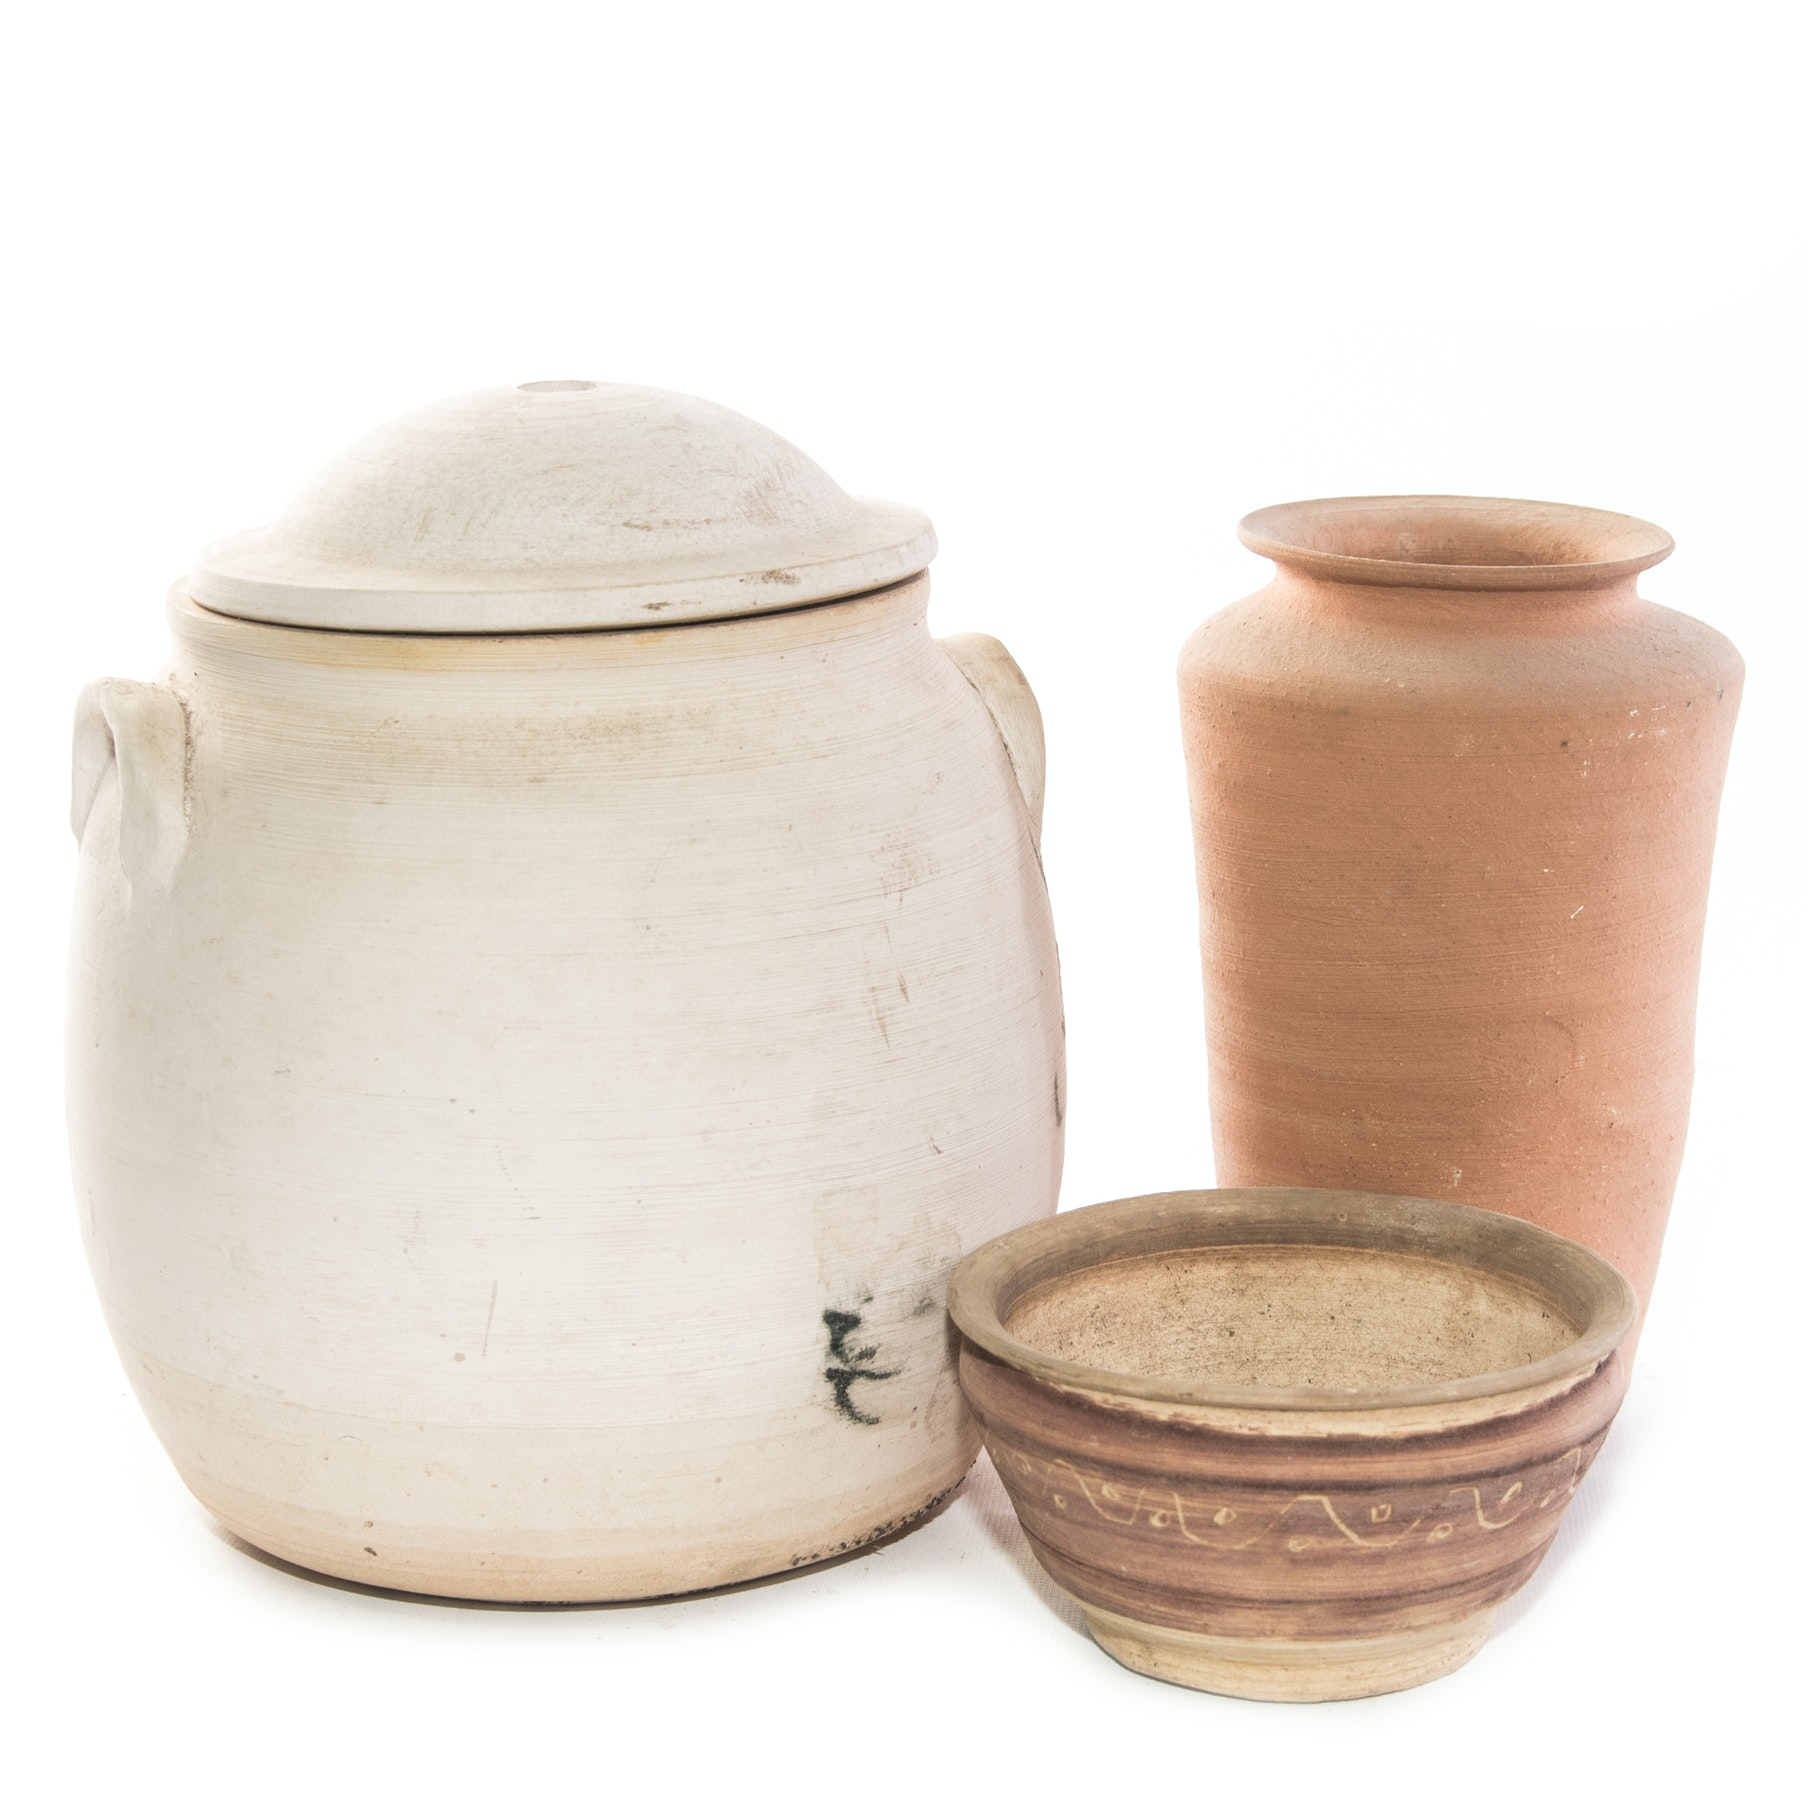 Unglazed Pottery Featuring Brown Pottery